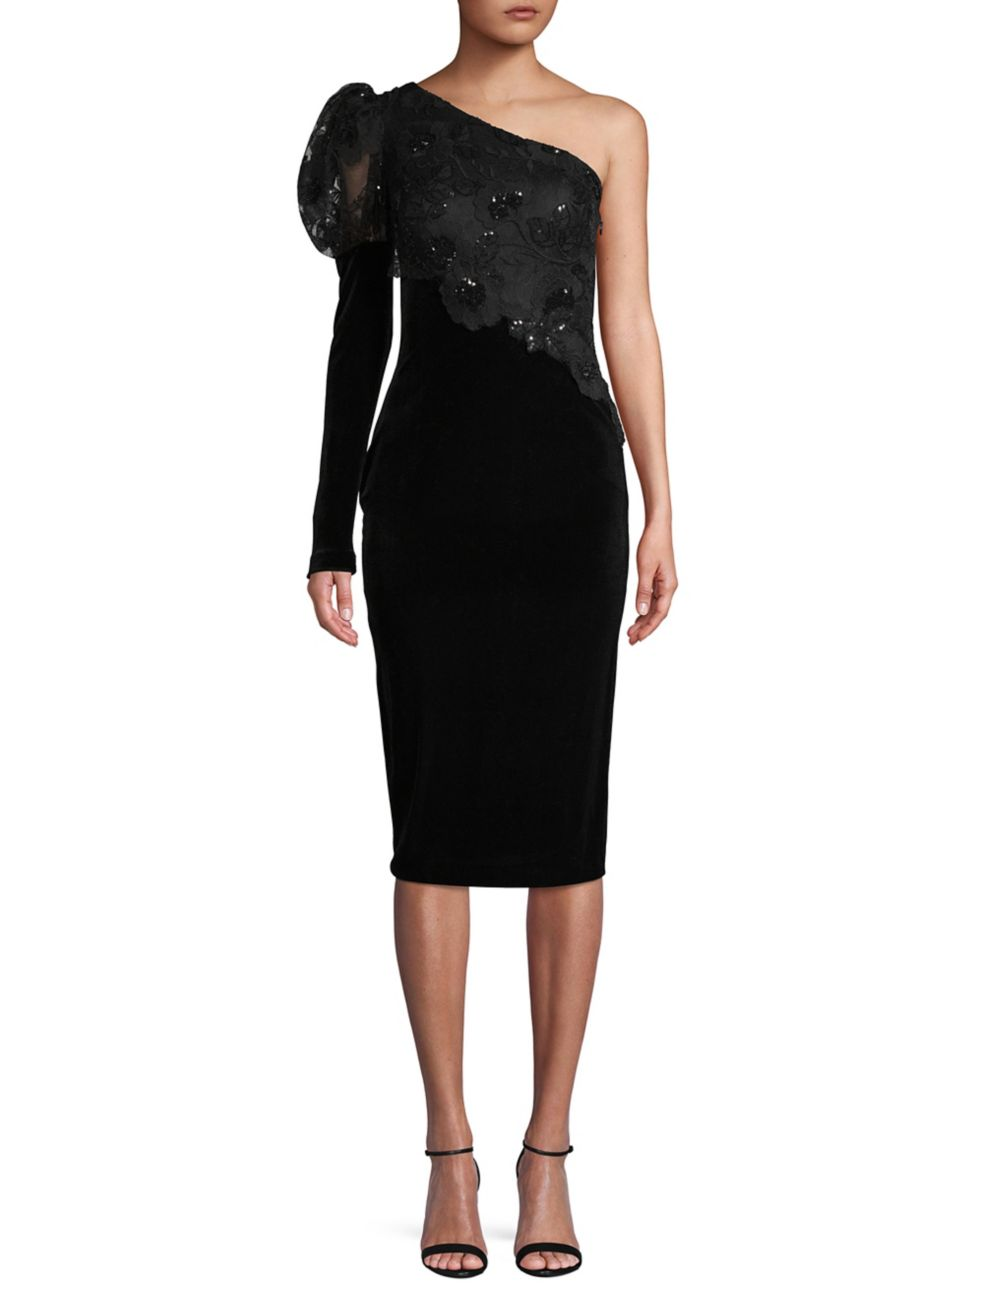 Embellished One-Shoulder Sheath Dress - $470 | $329 on SALE with code: FRIENDS, Nicole Bakti.